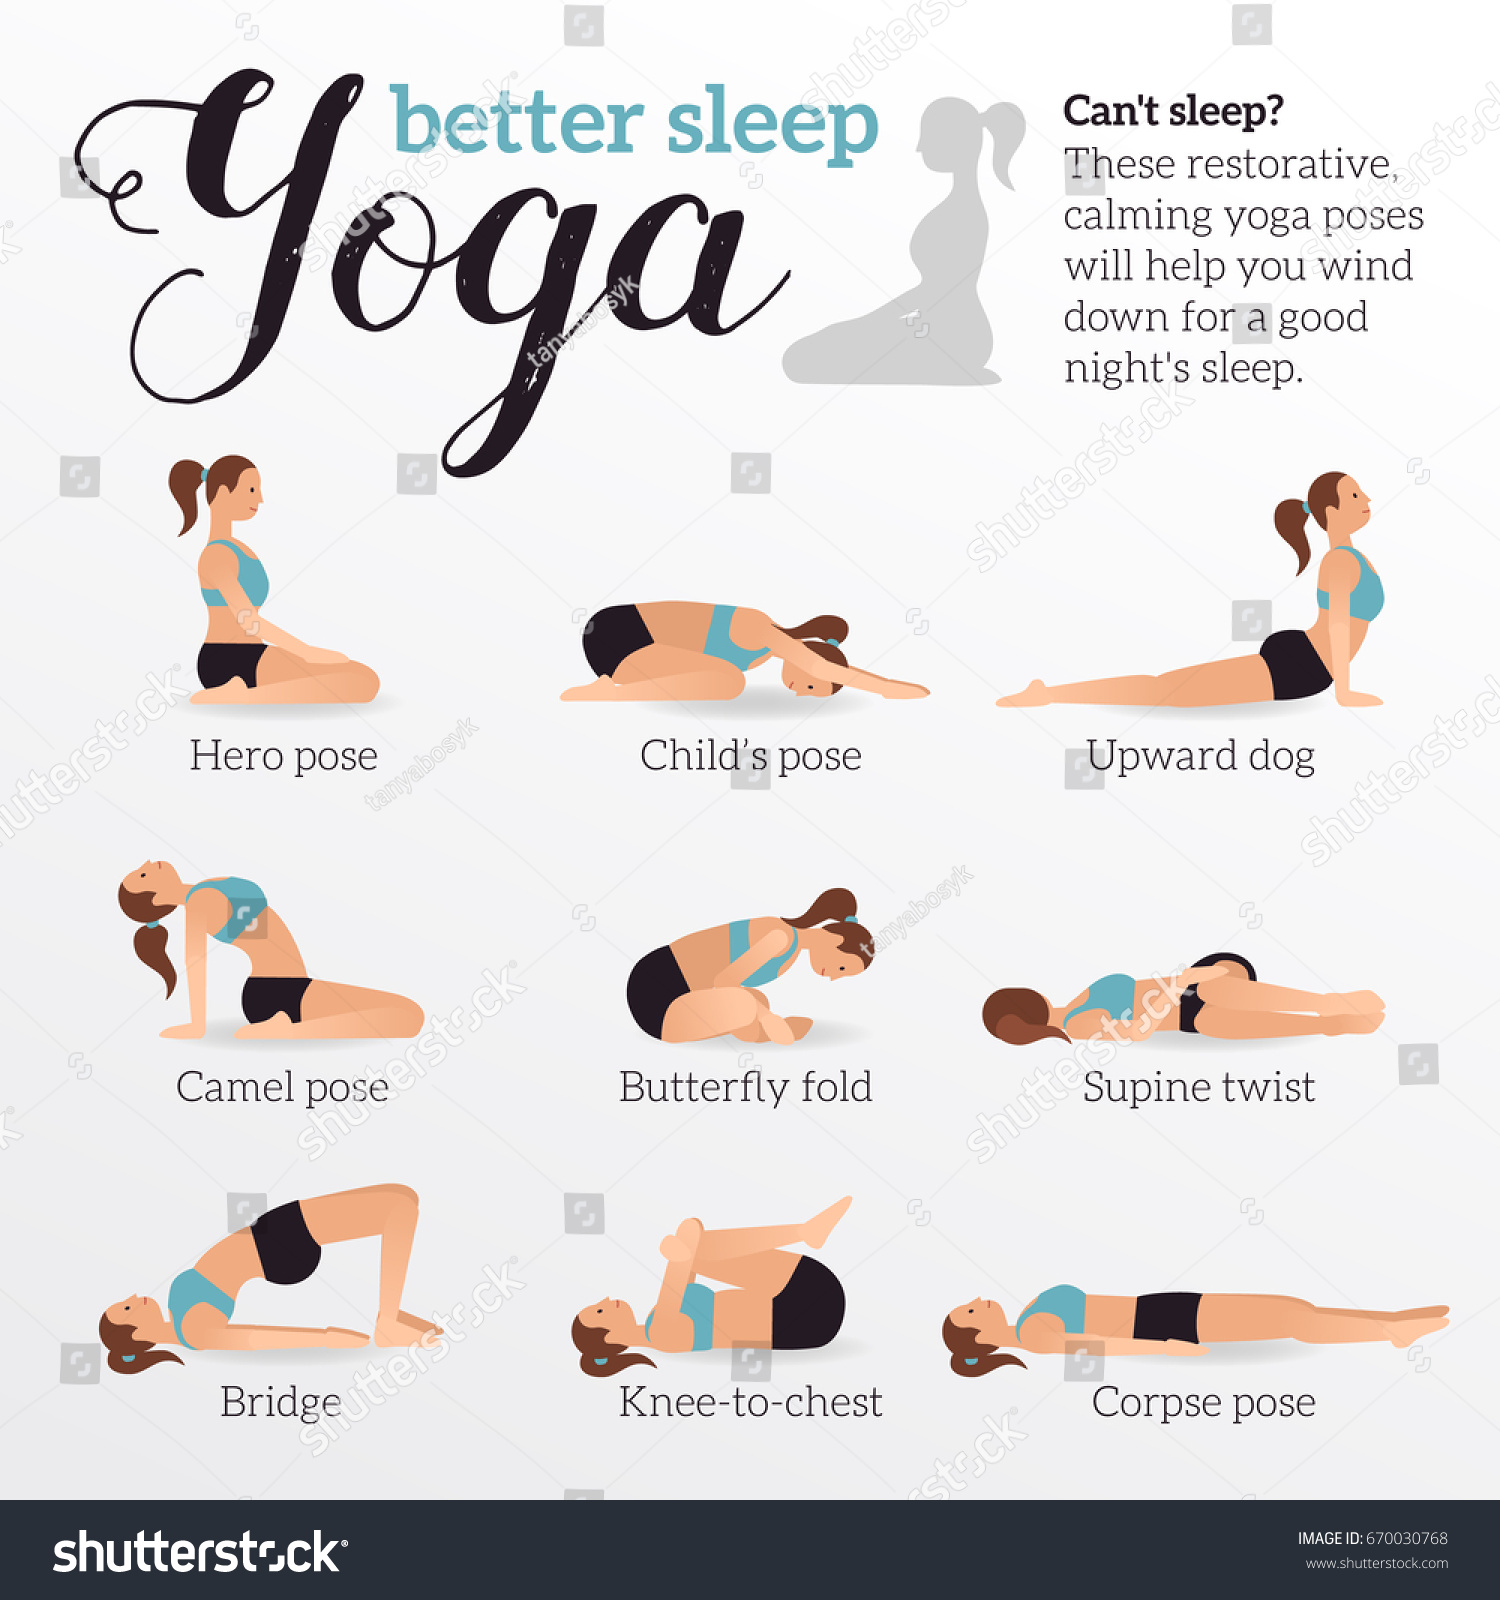 Yoga Poses For Better Sleep Vector Illustrations With Woman In Sport Bra And Shorts Doing